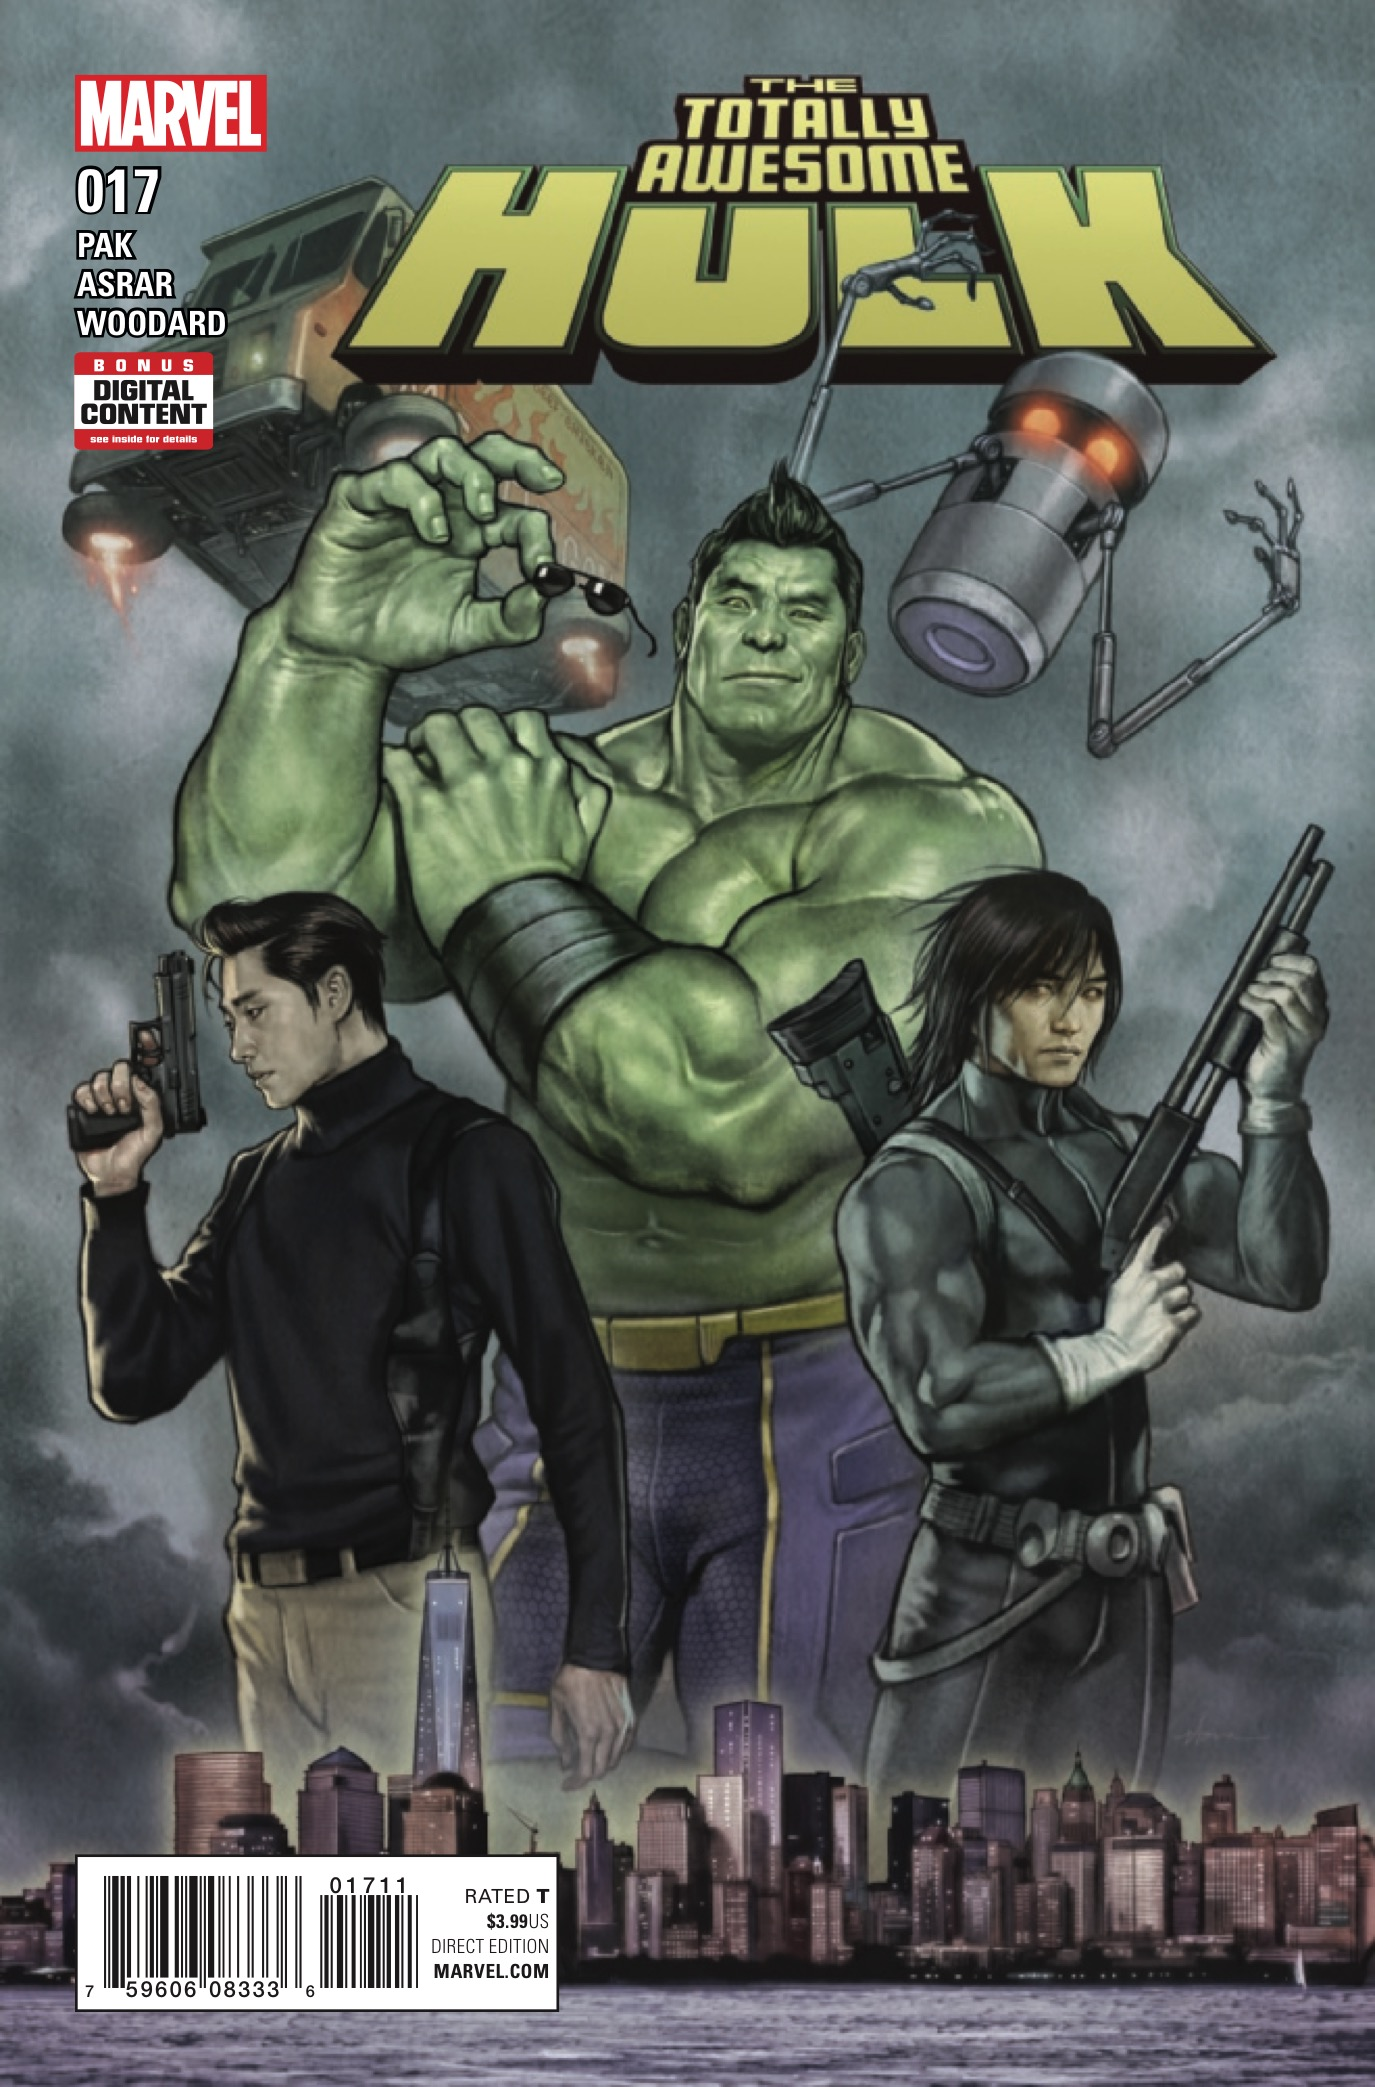 Marvel Preview: The Totally Awesome Hulk #17